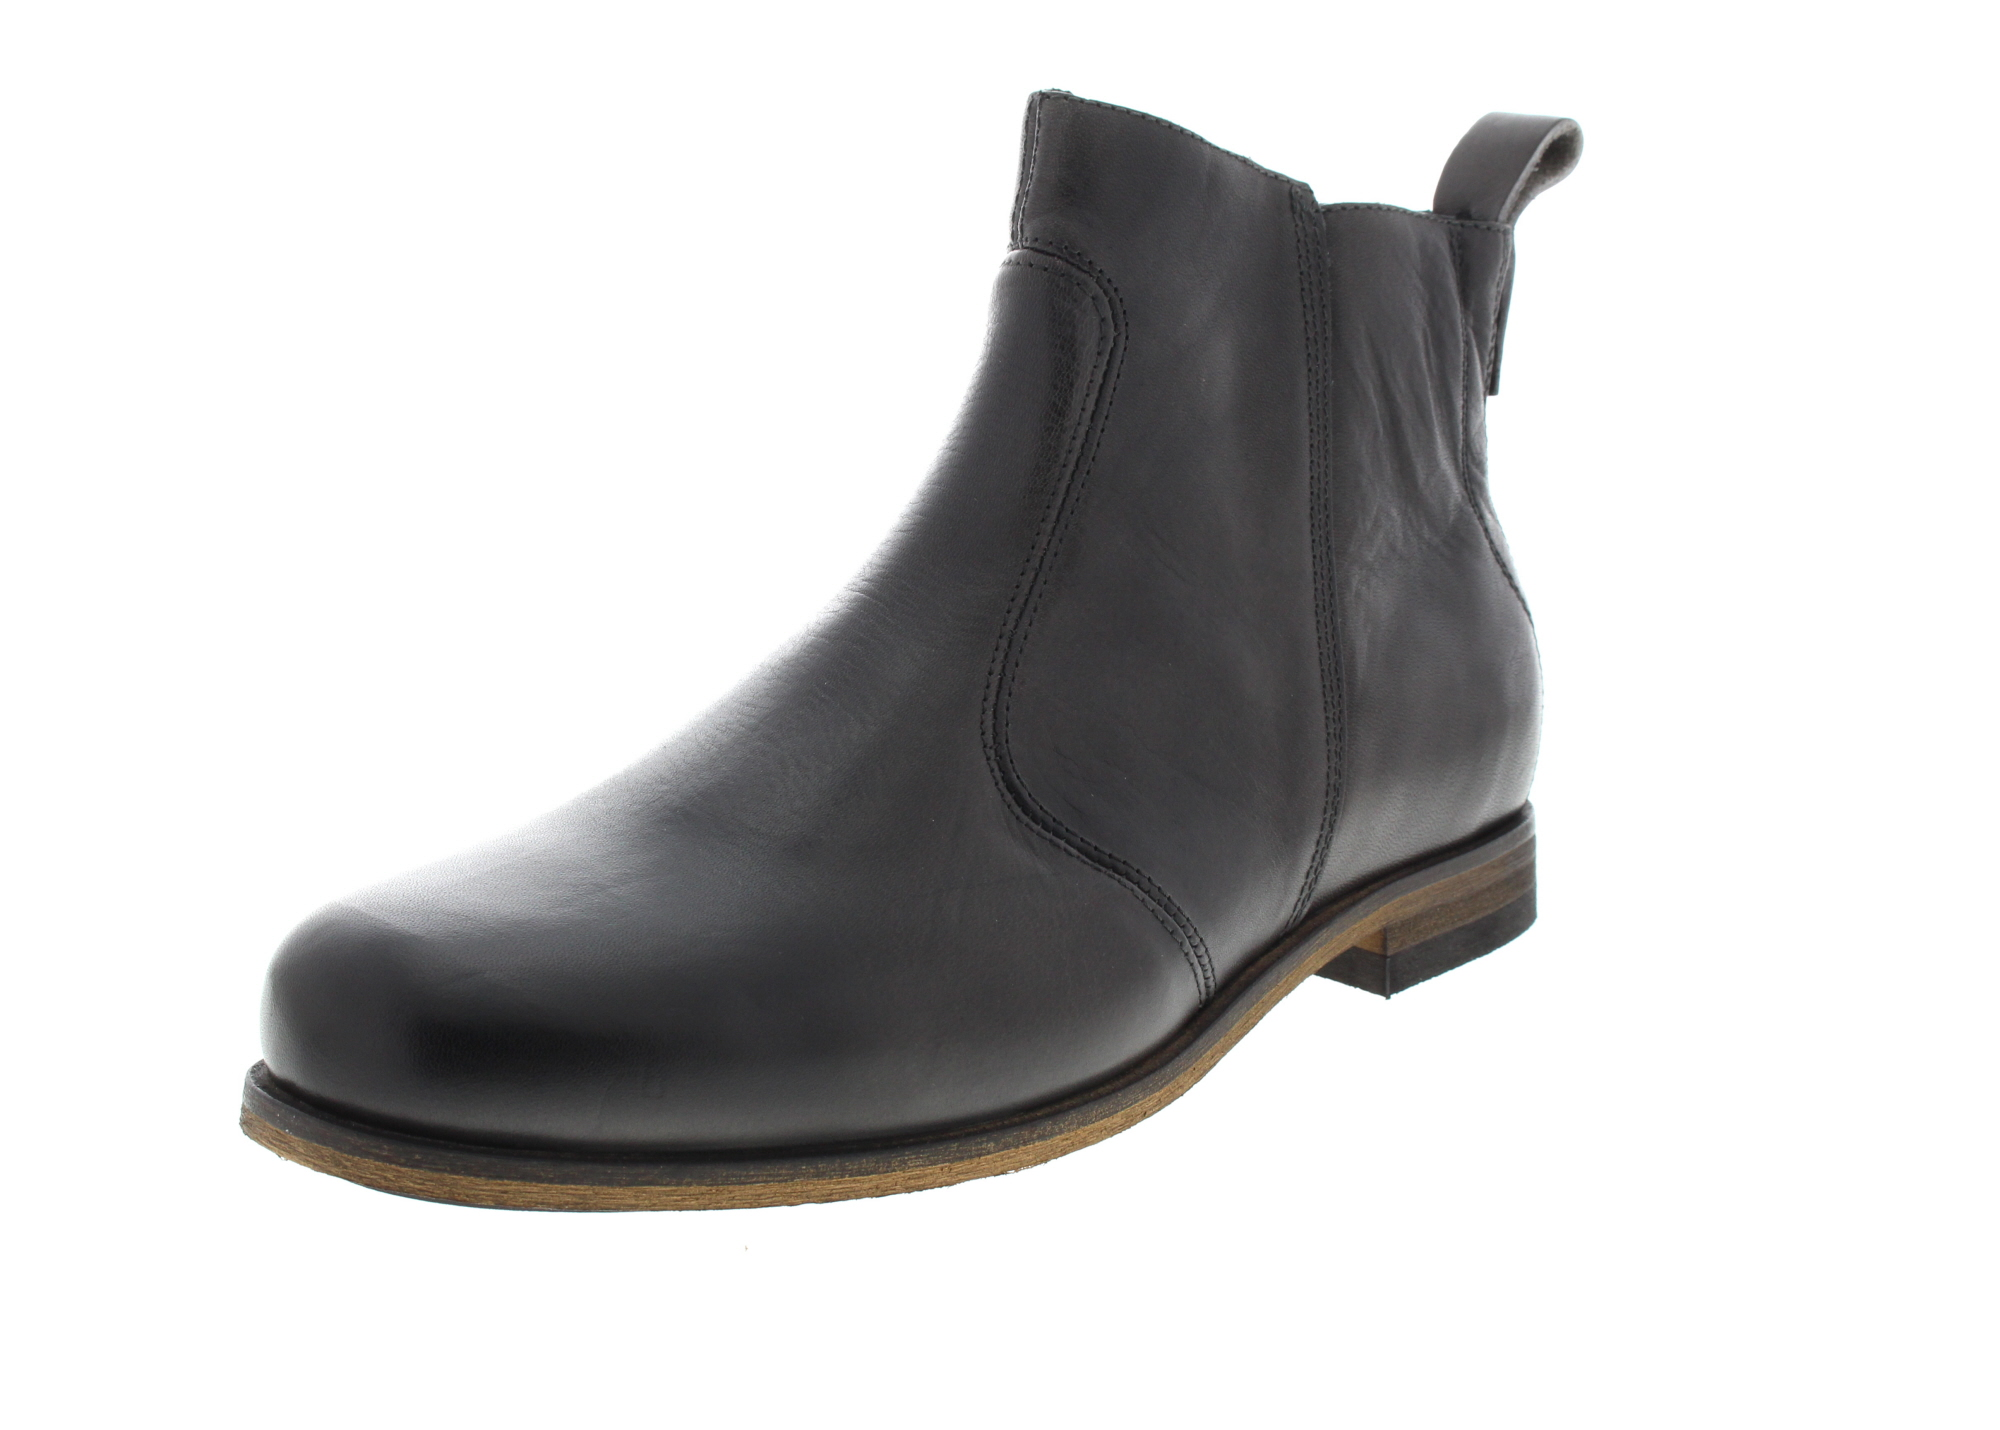 HAGHE by HUB Herrenschuhe - Boots SAVEA - dark grey0-6709